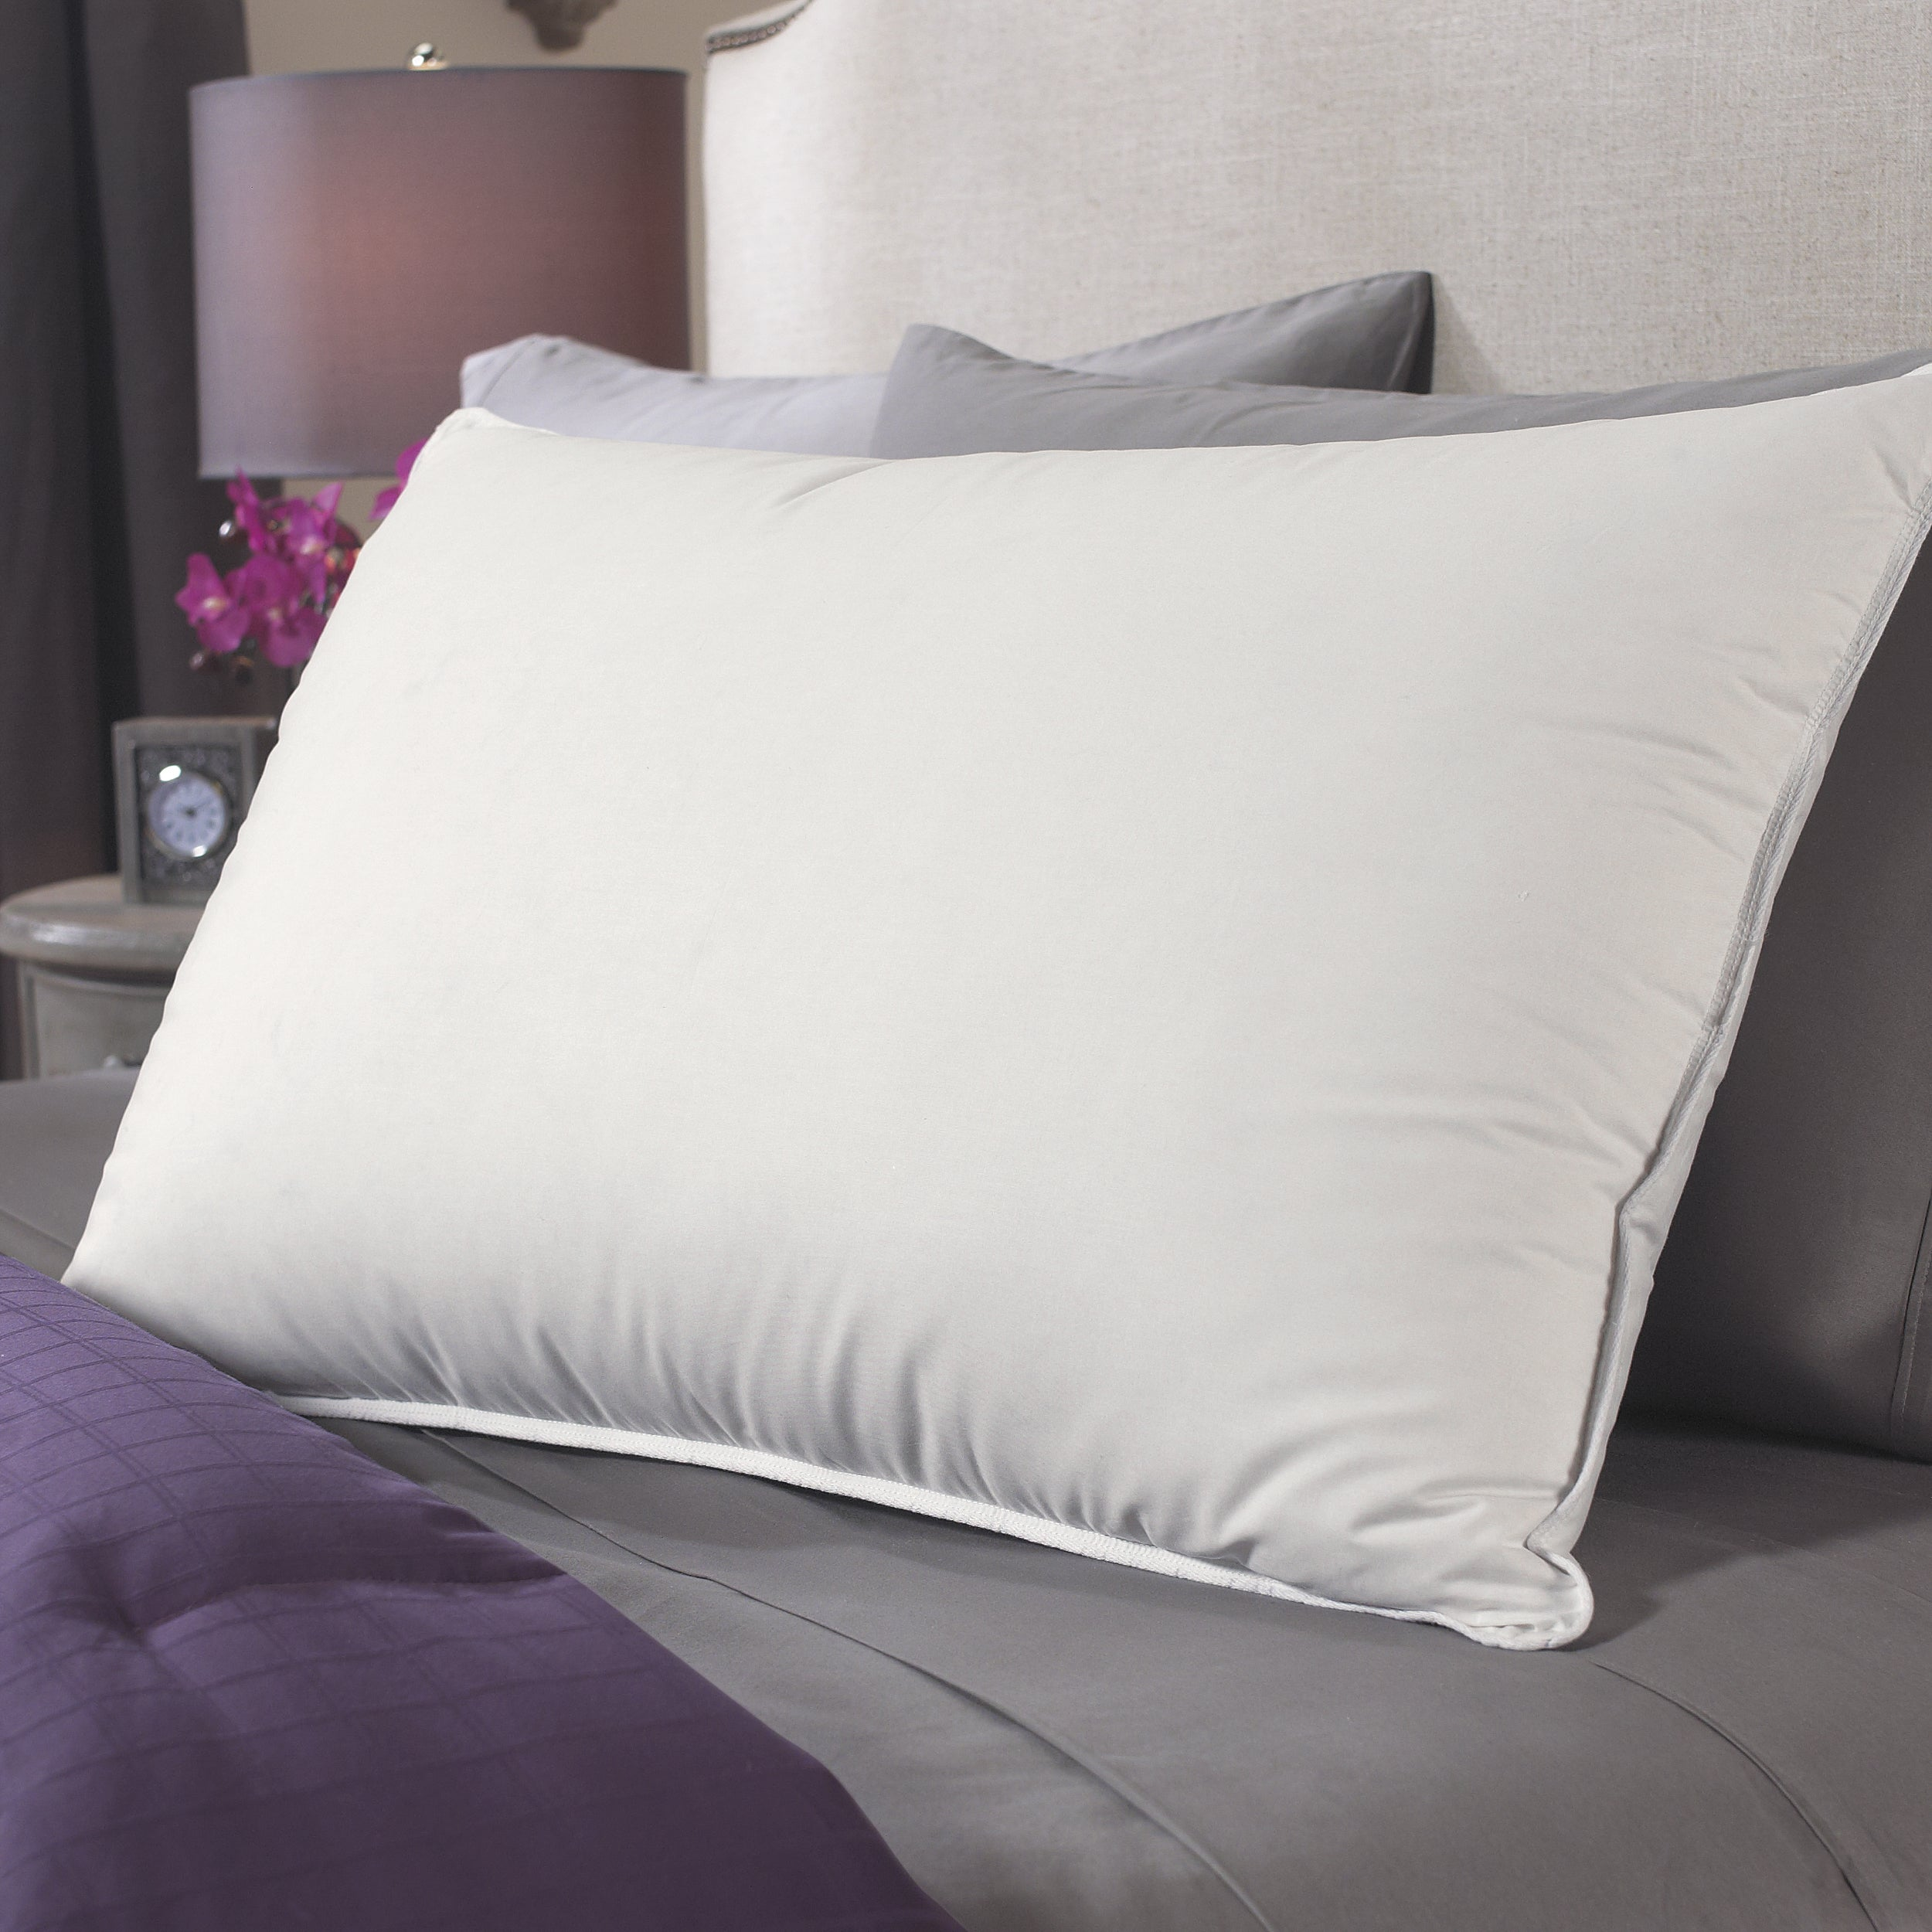 Famous Maker Natural Support White Down Pillow